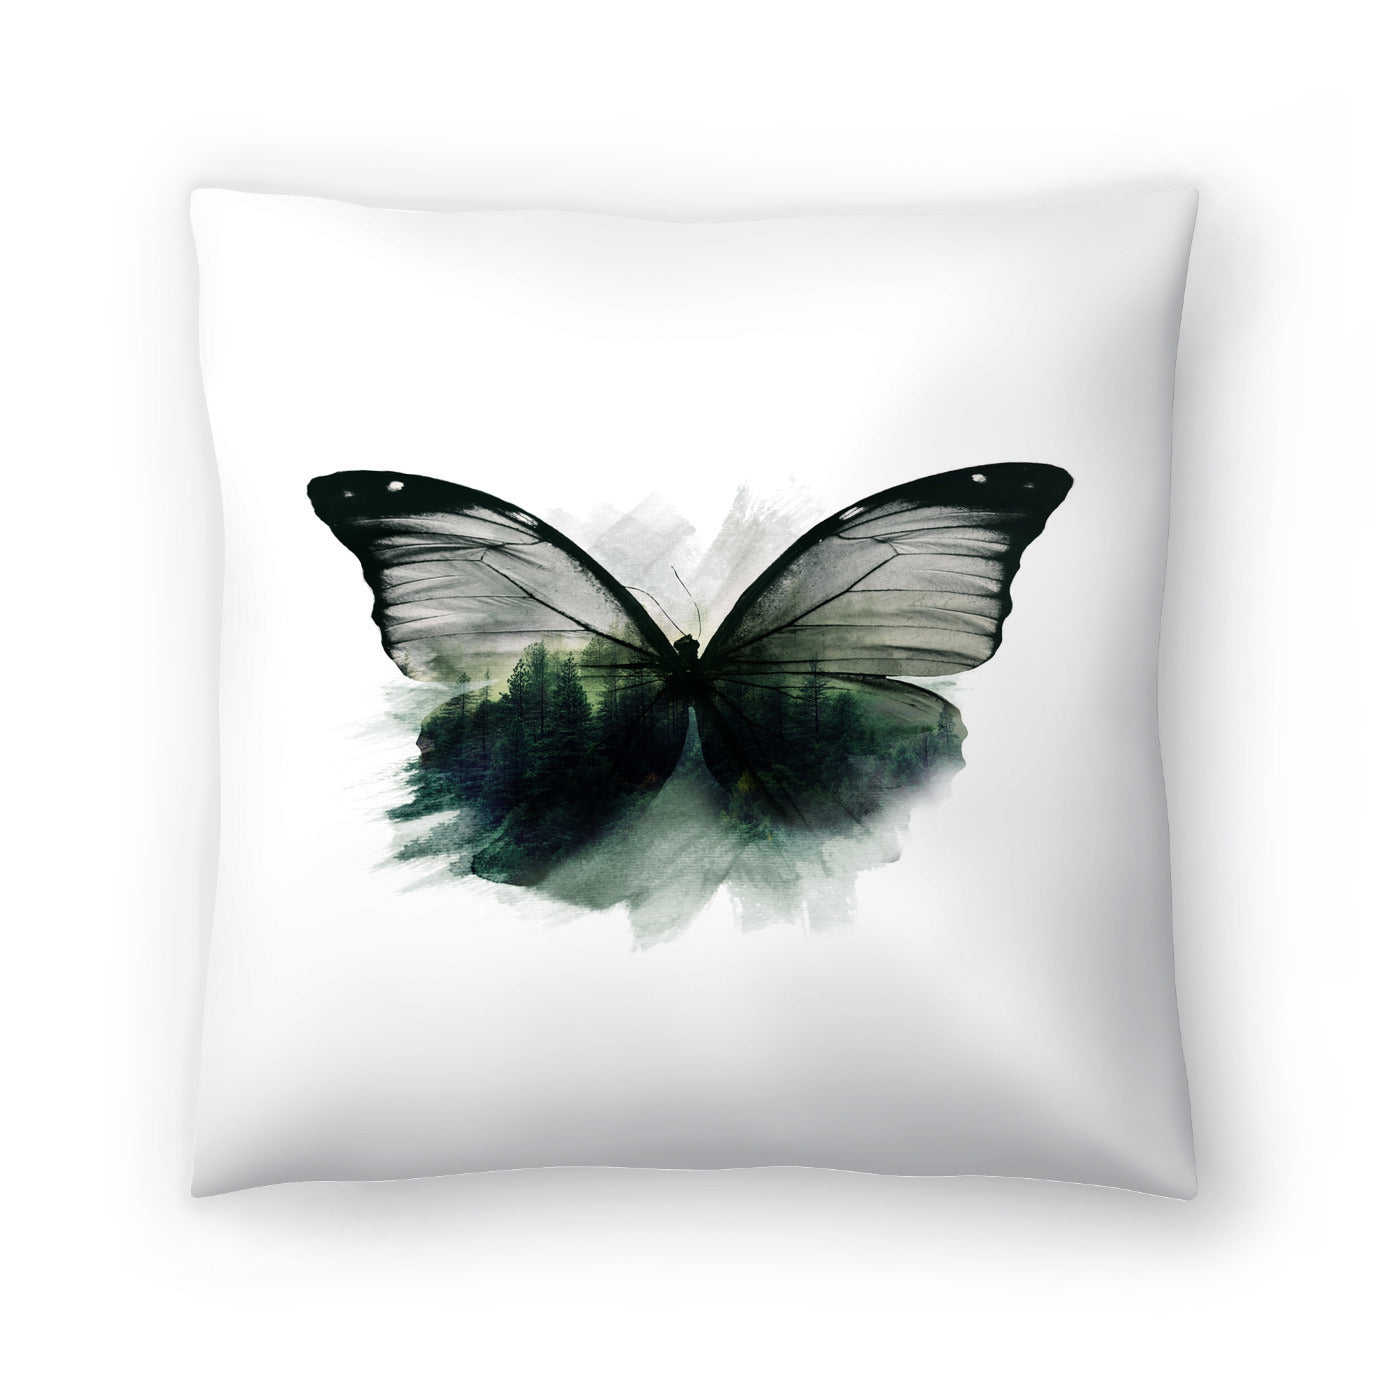 Double Butterfly by Emanuela Carratoni Decorative Pillow - Decorative Pillow - Americanflat